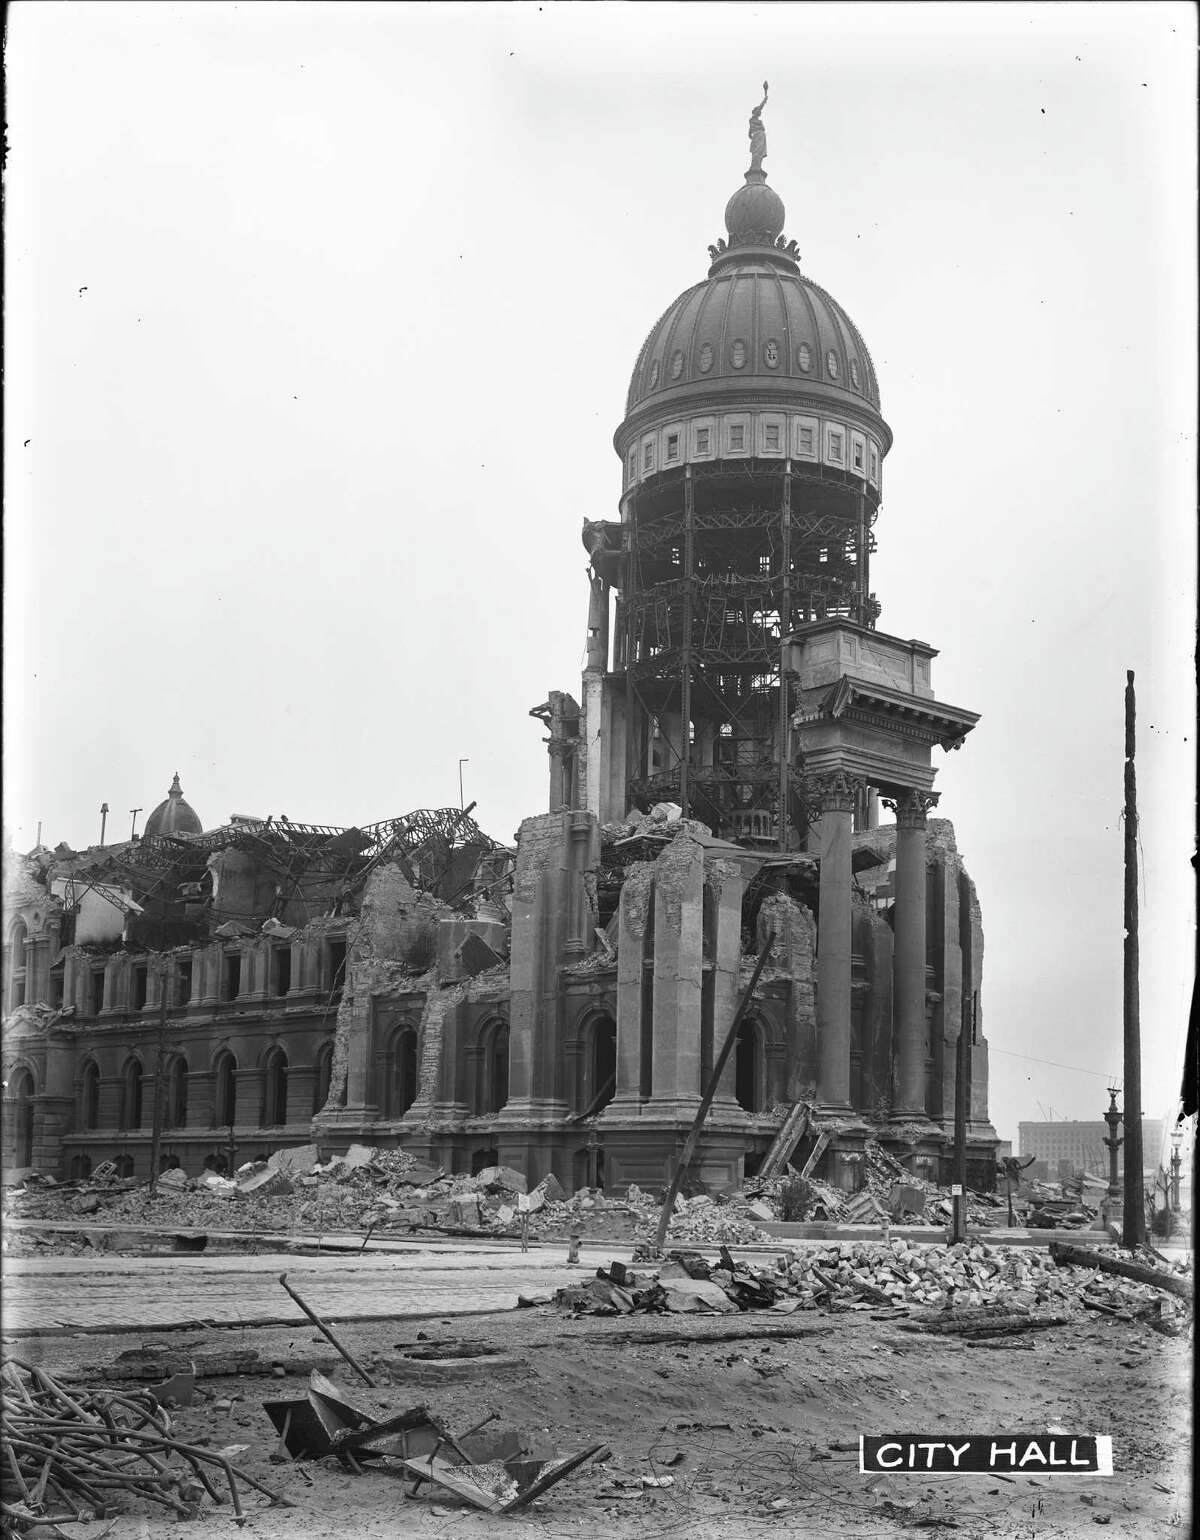 City Hall Dome and Goddess of Progress Statue Standing Above the Ruins | May 7, 1906